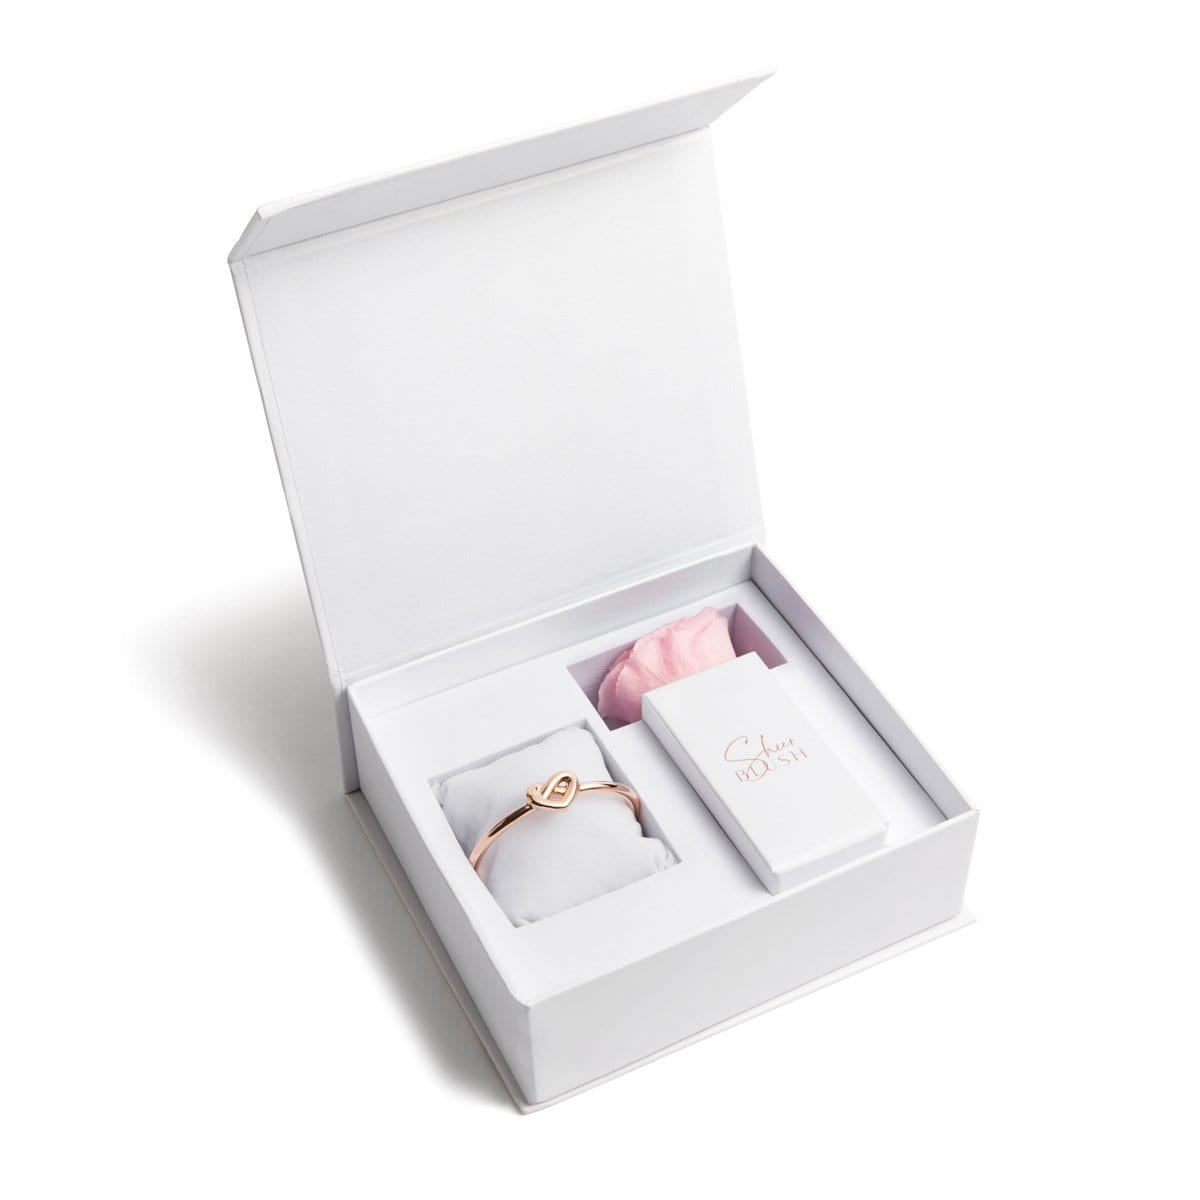 Heart Knot Eternal Rose Gift Set (Blush)